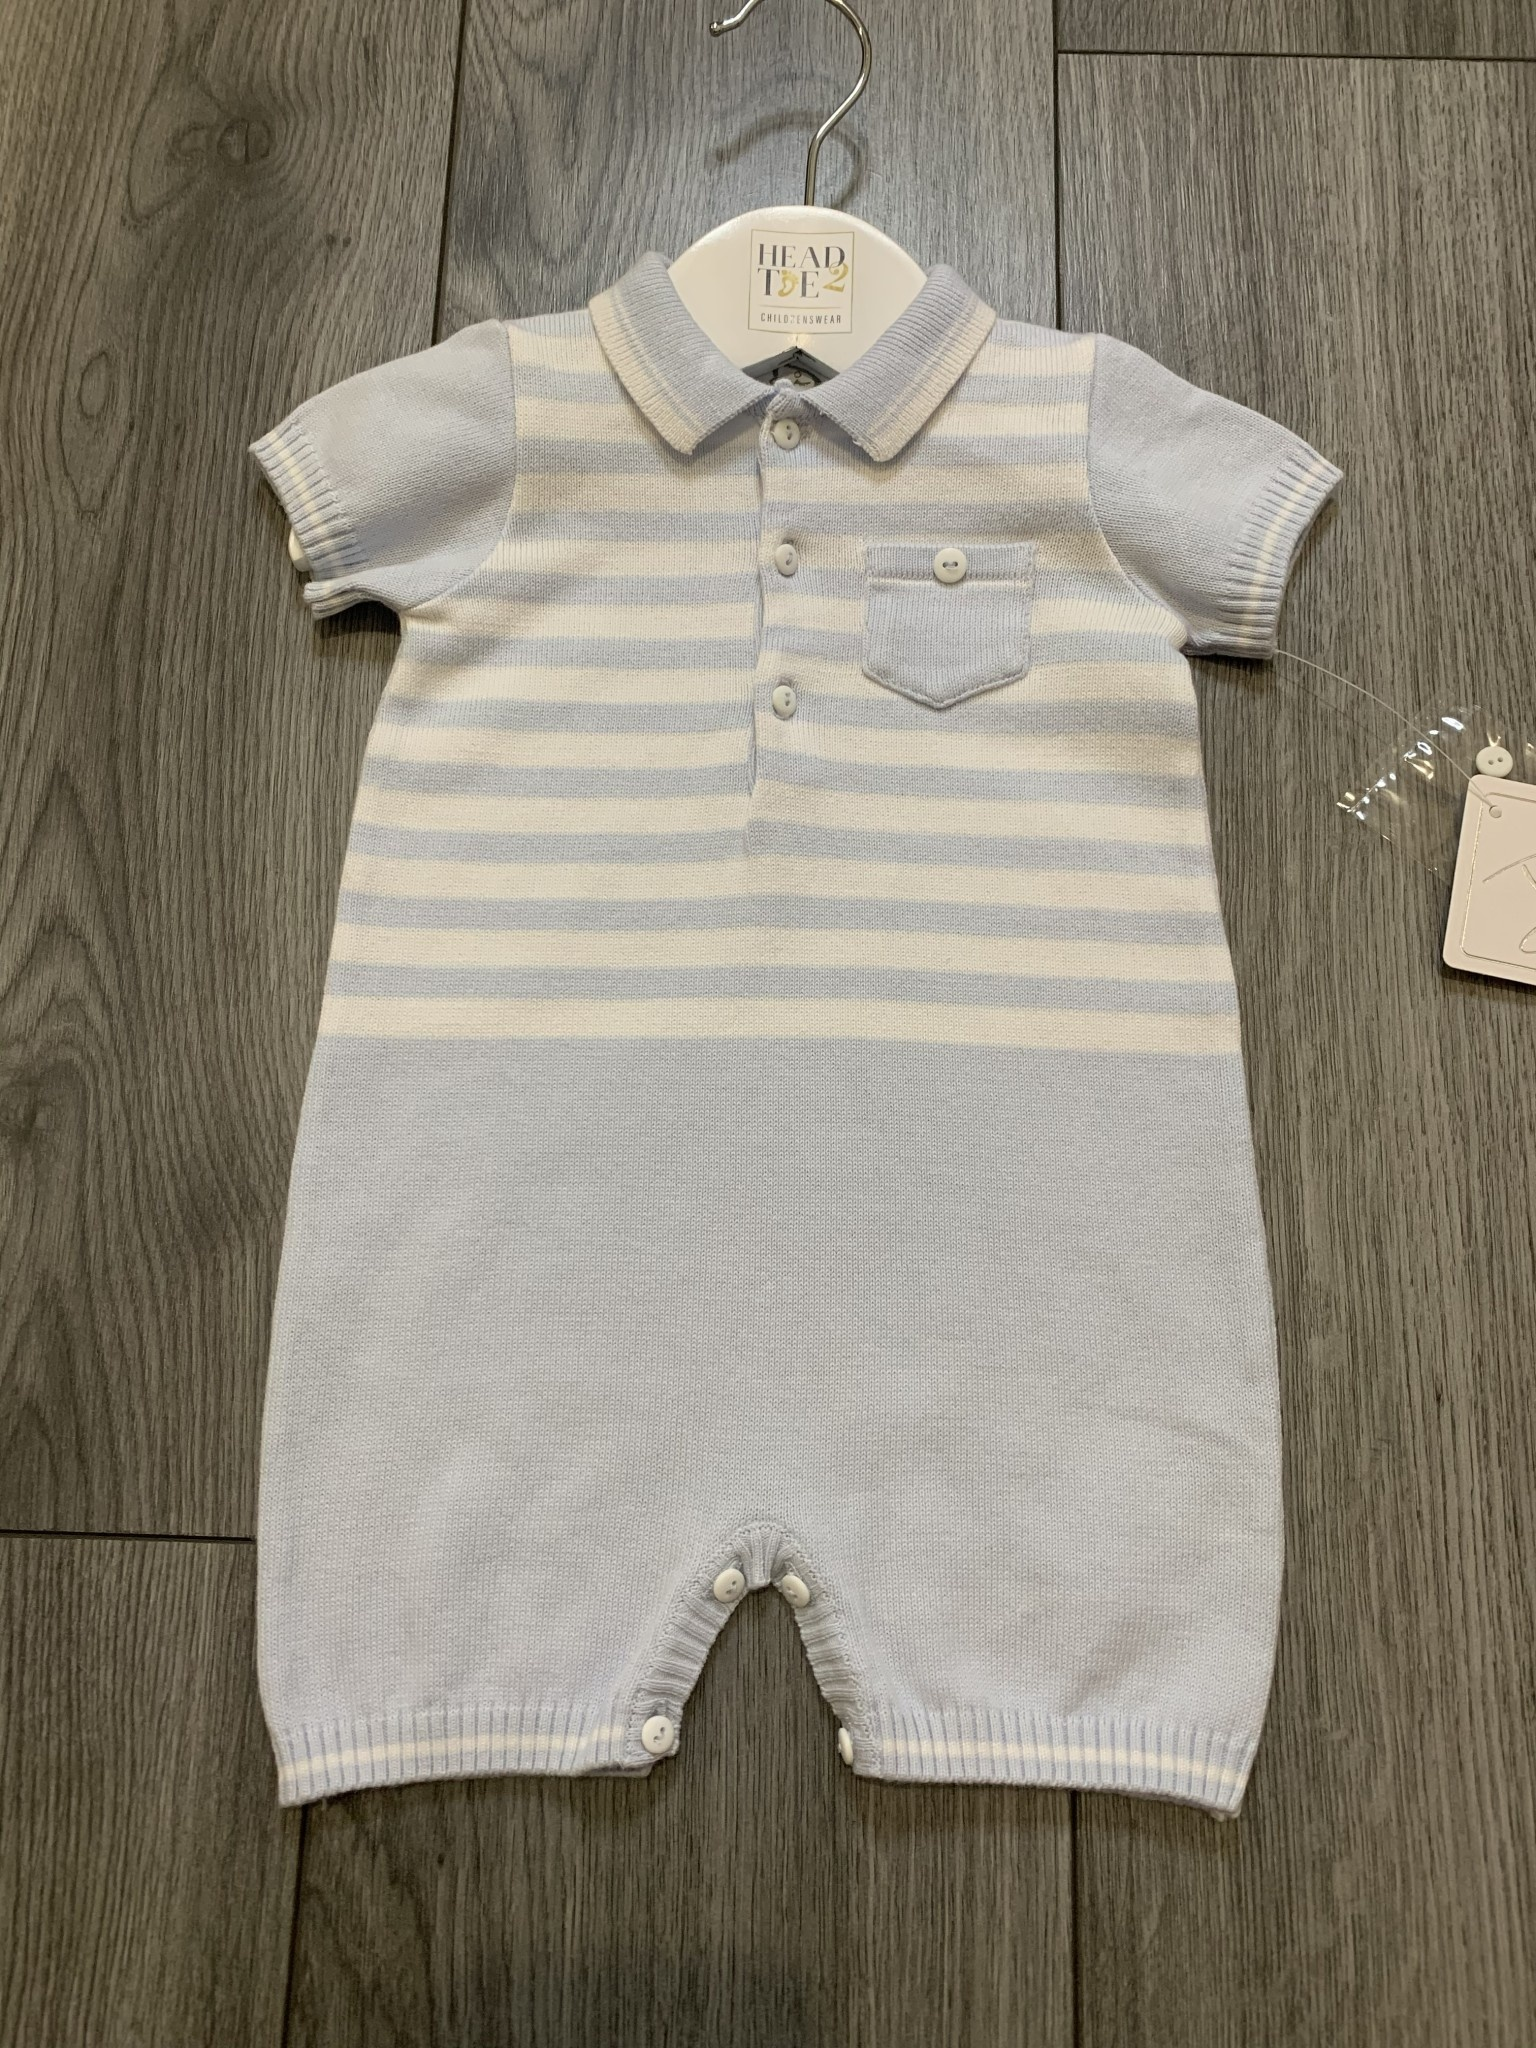 Sarah Louise Dani SS20 Boys All in one blue and white striped soft knit romper with pocket detail D09411